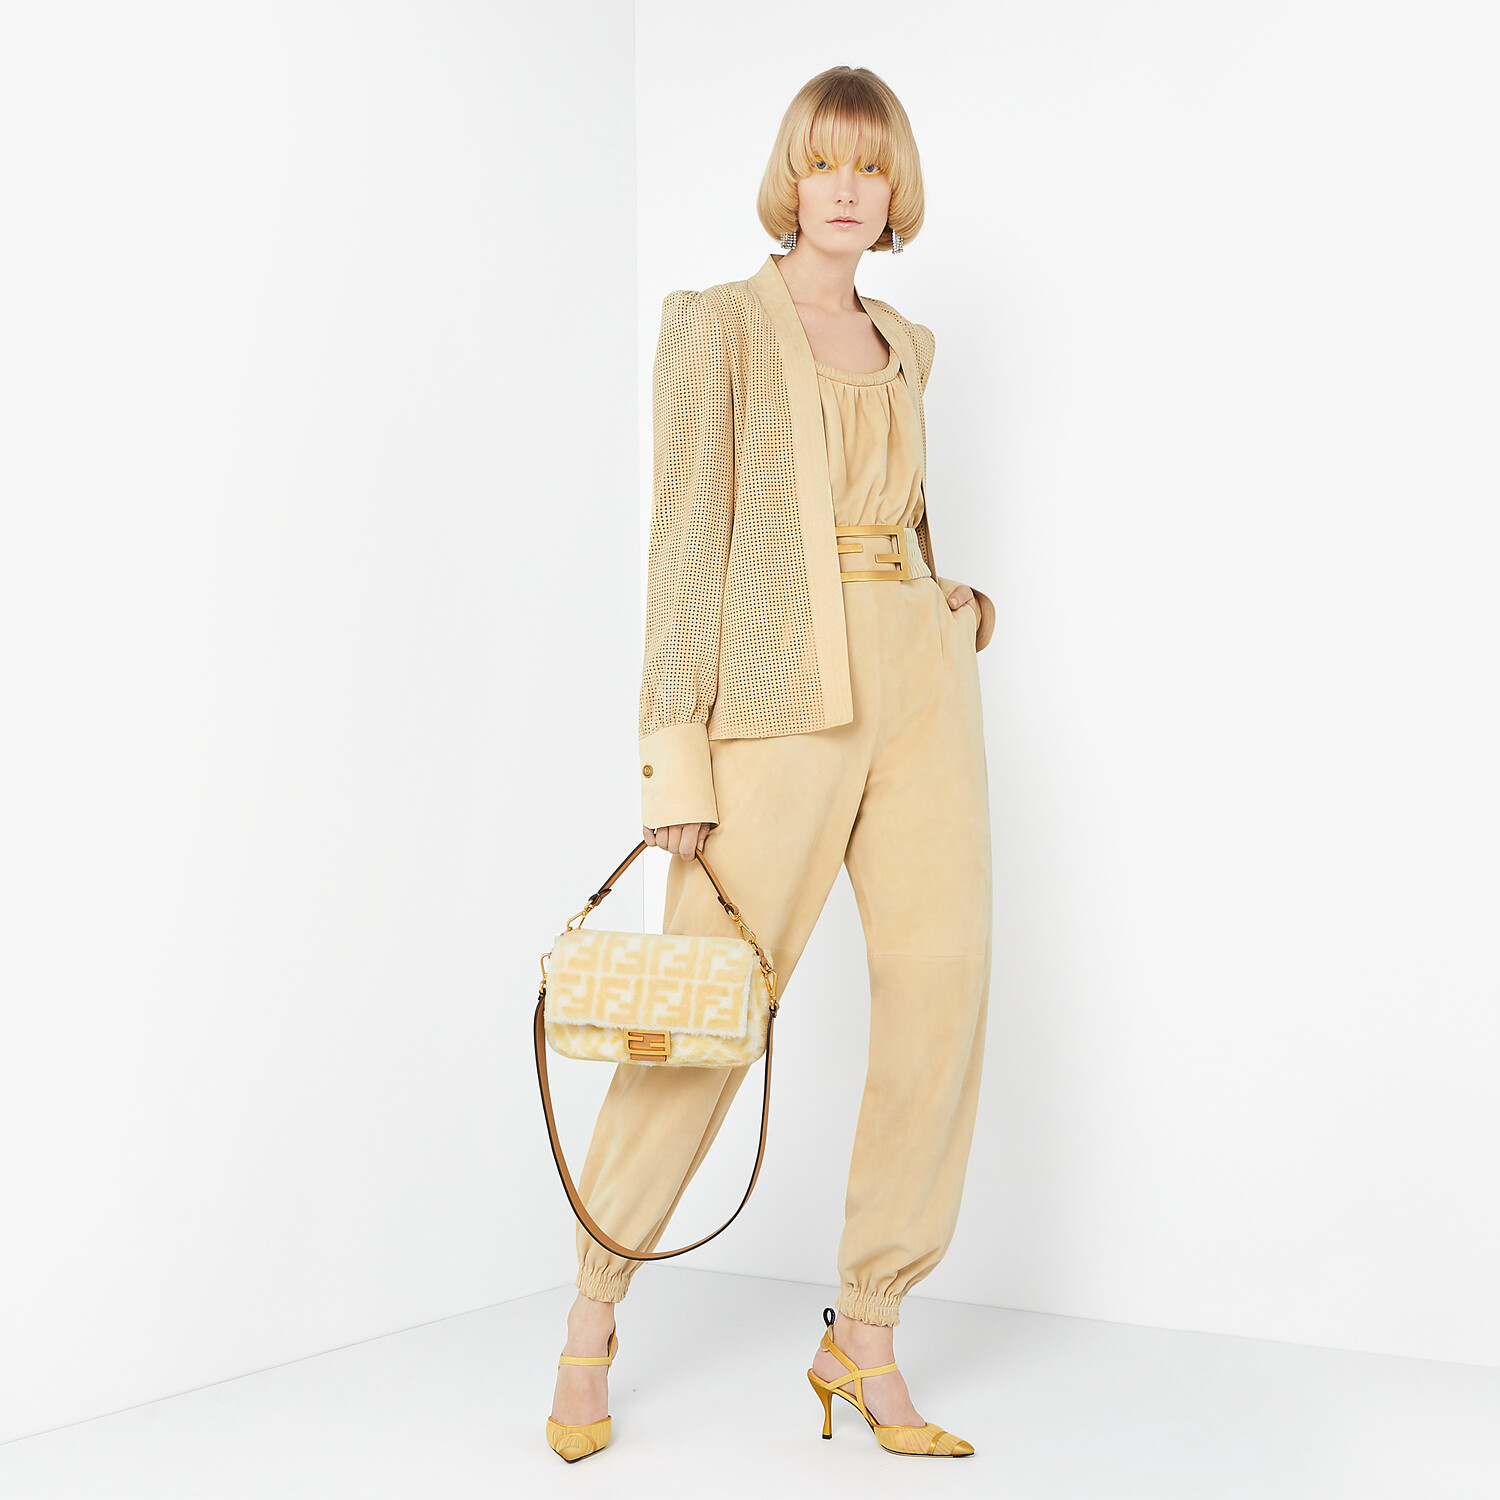 FENDI JUMPSUIT - Beige suede jumpsuit - view 4 detail